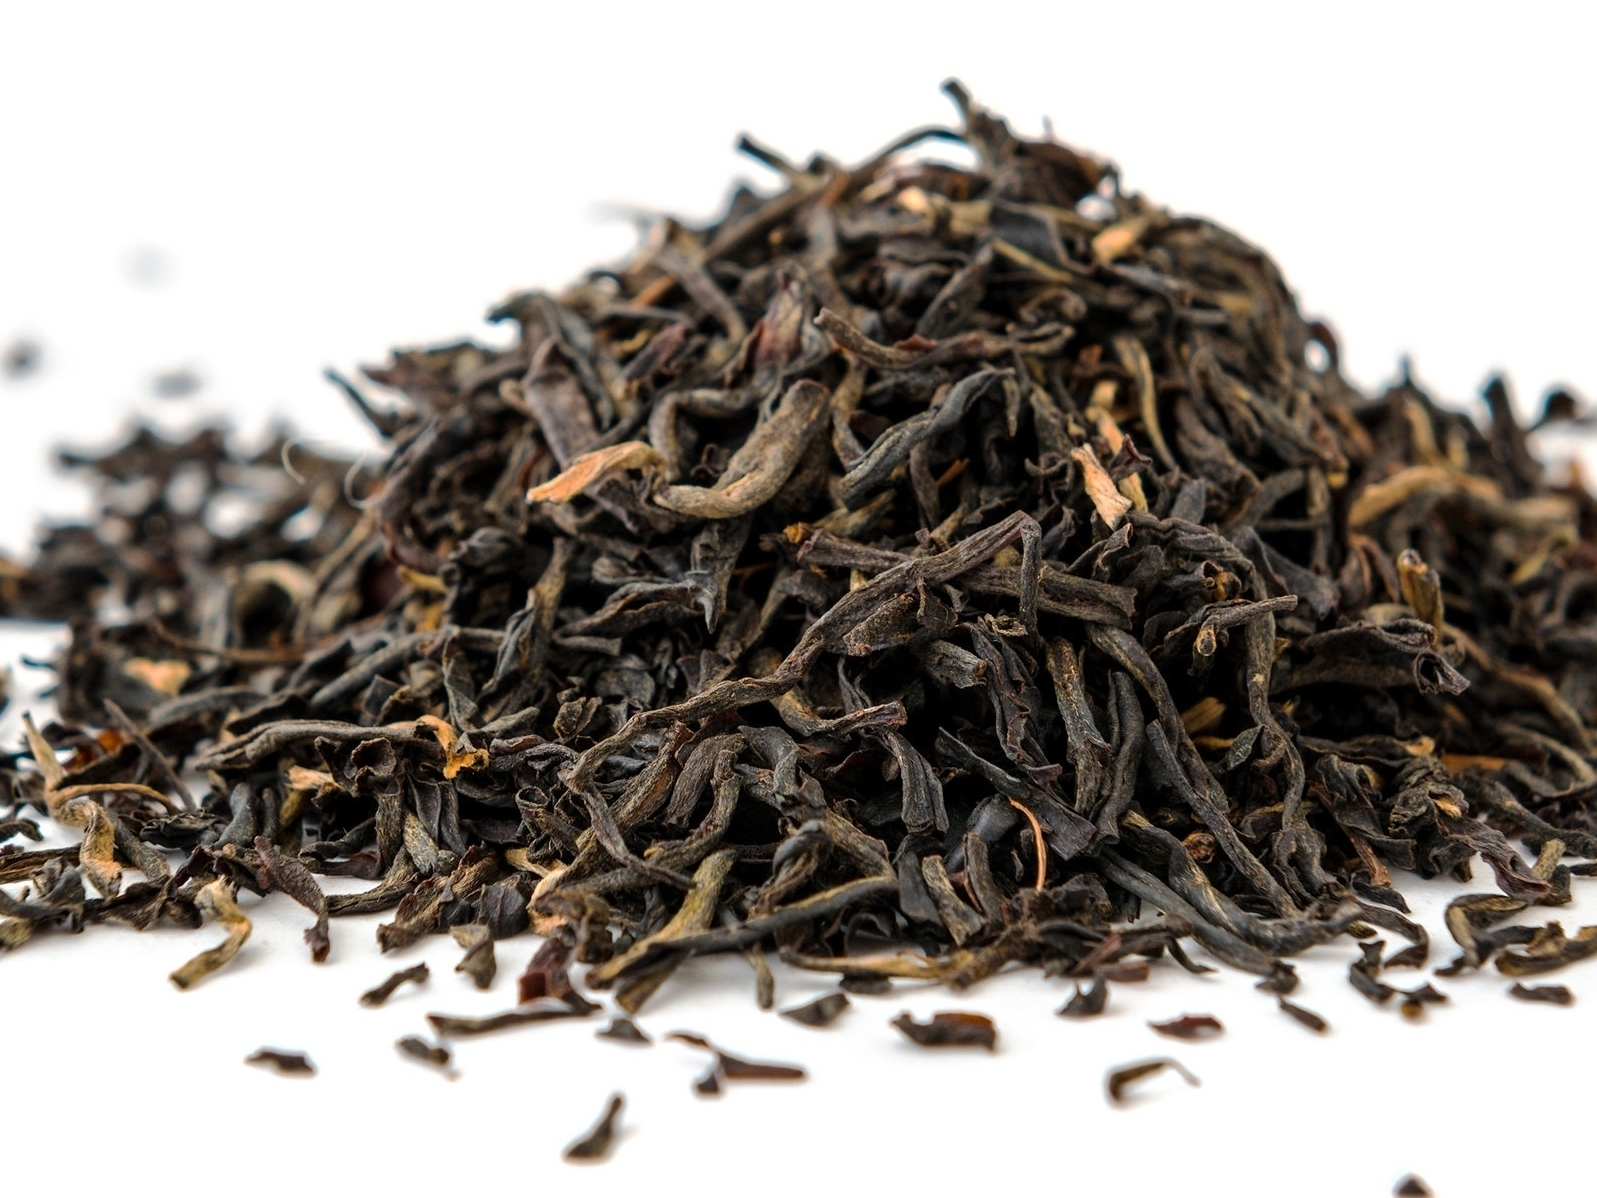 China: WuYi Jin Jun Mei - Another organic cuppa that makes our tastebuds happy. Light malty notes makes this one of our favorites teas for morning, noon and teatime. Basically all day long.